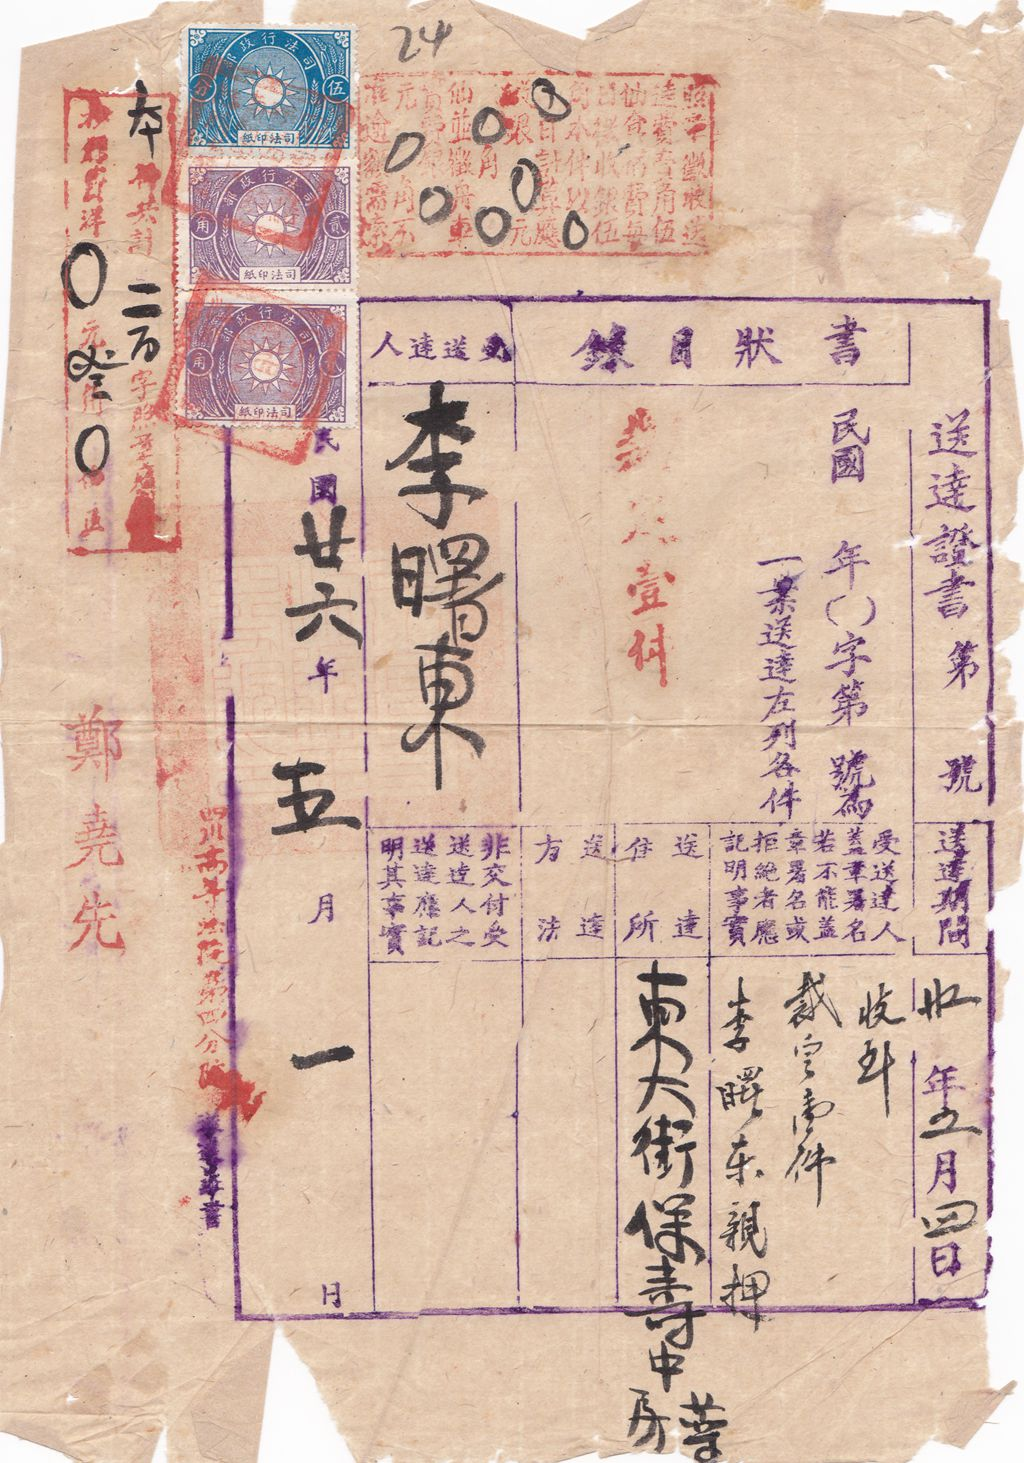 R1085, Judicial Sheets 3 pcs Judicial Stamp, 1937, Sichuan, China